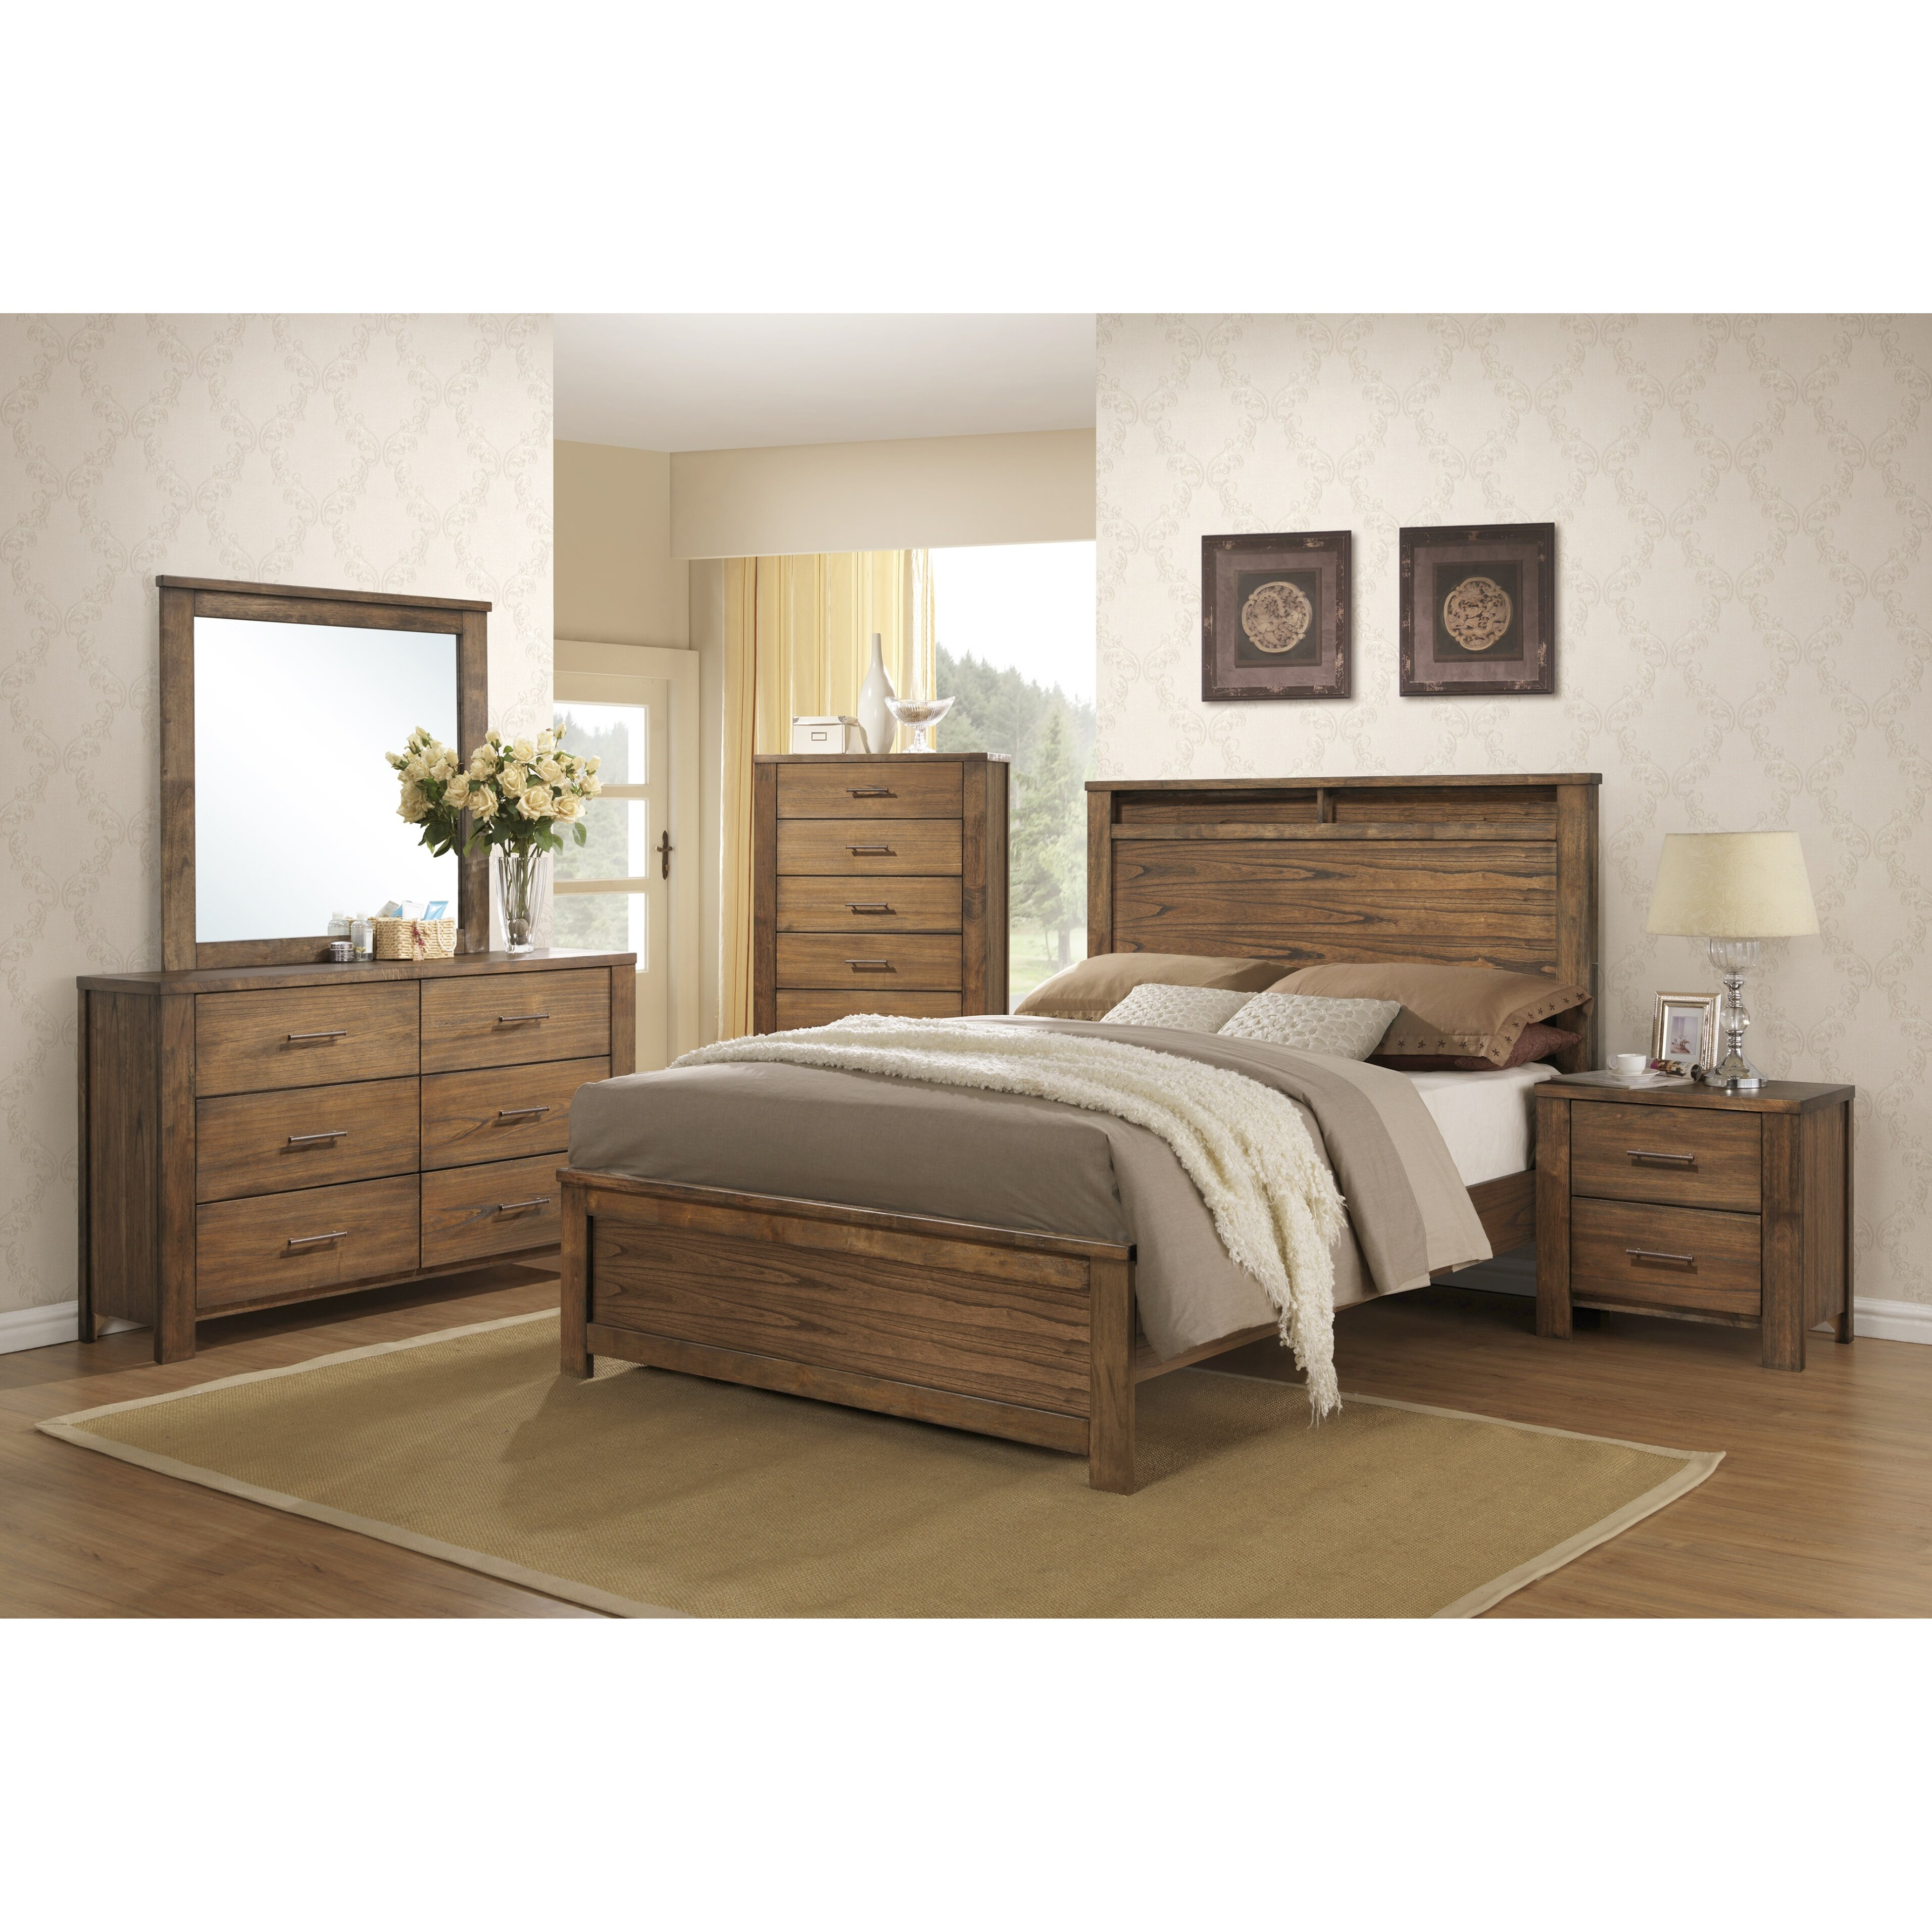 Progressive Furniture Brayden Panel Customizable Bedroom